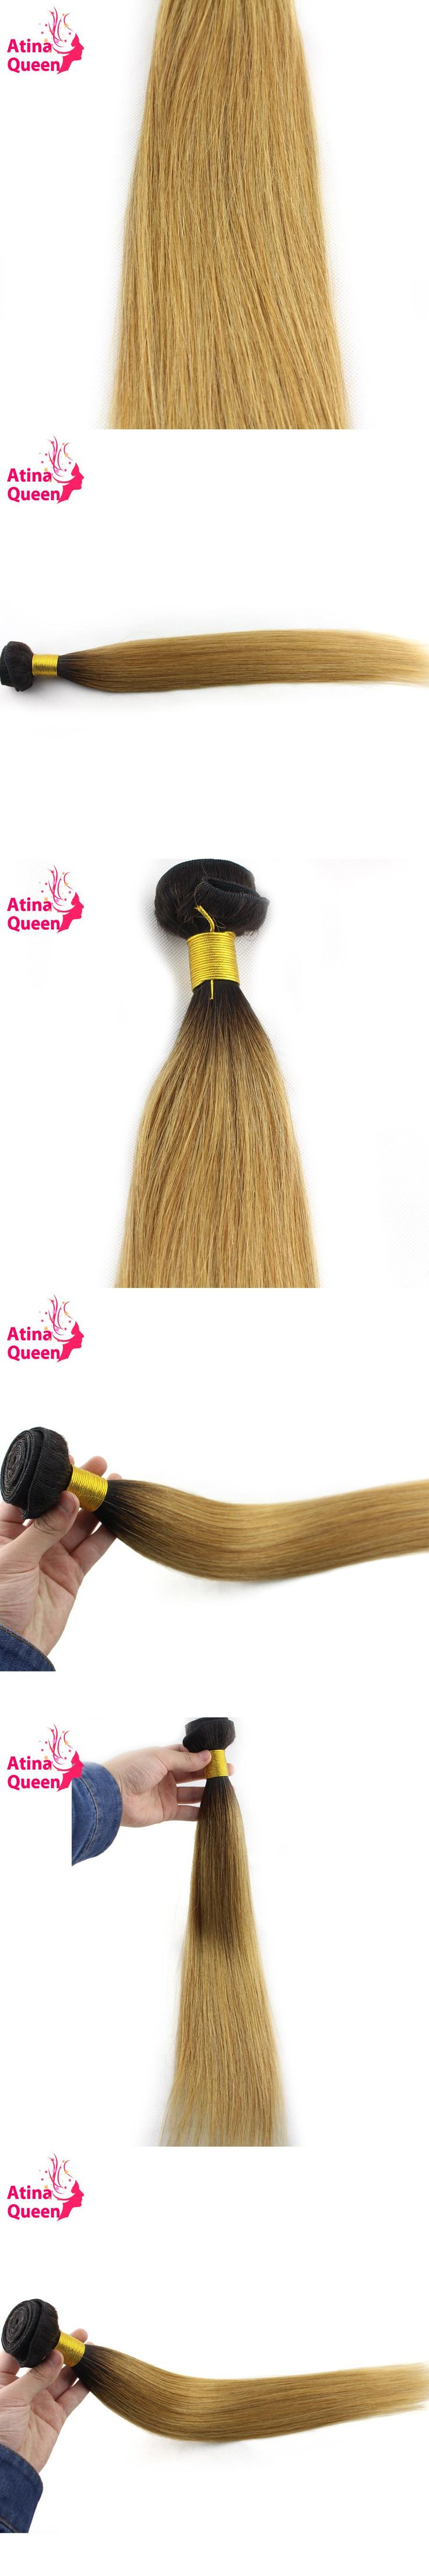 Atina Queen 1B27 Straight Brazilian Hair Weave Bundles Two Tone Dark Roots Honey Blonde Ombre Human Hair Extensions Non Remy 1pc